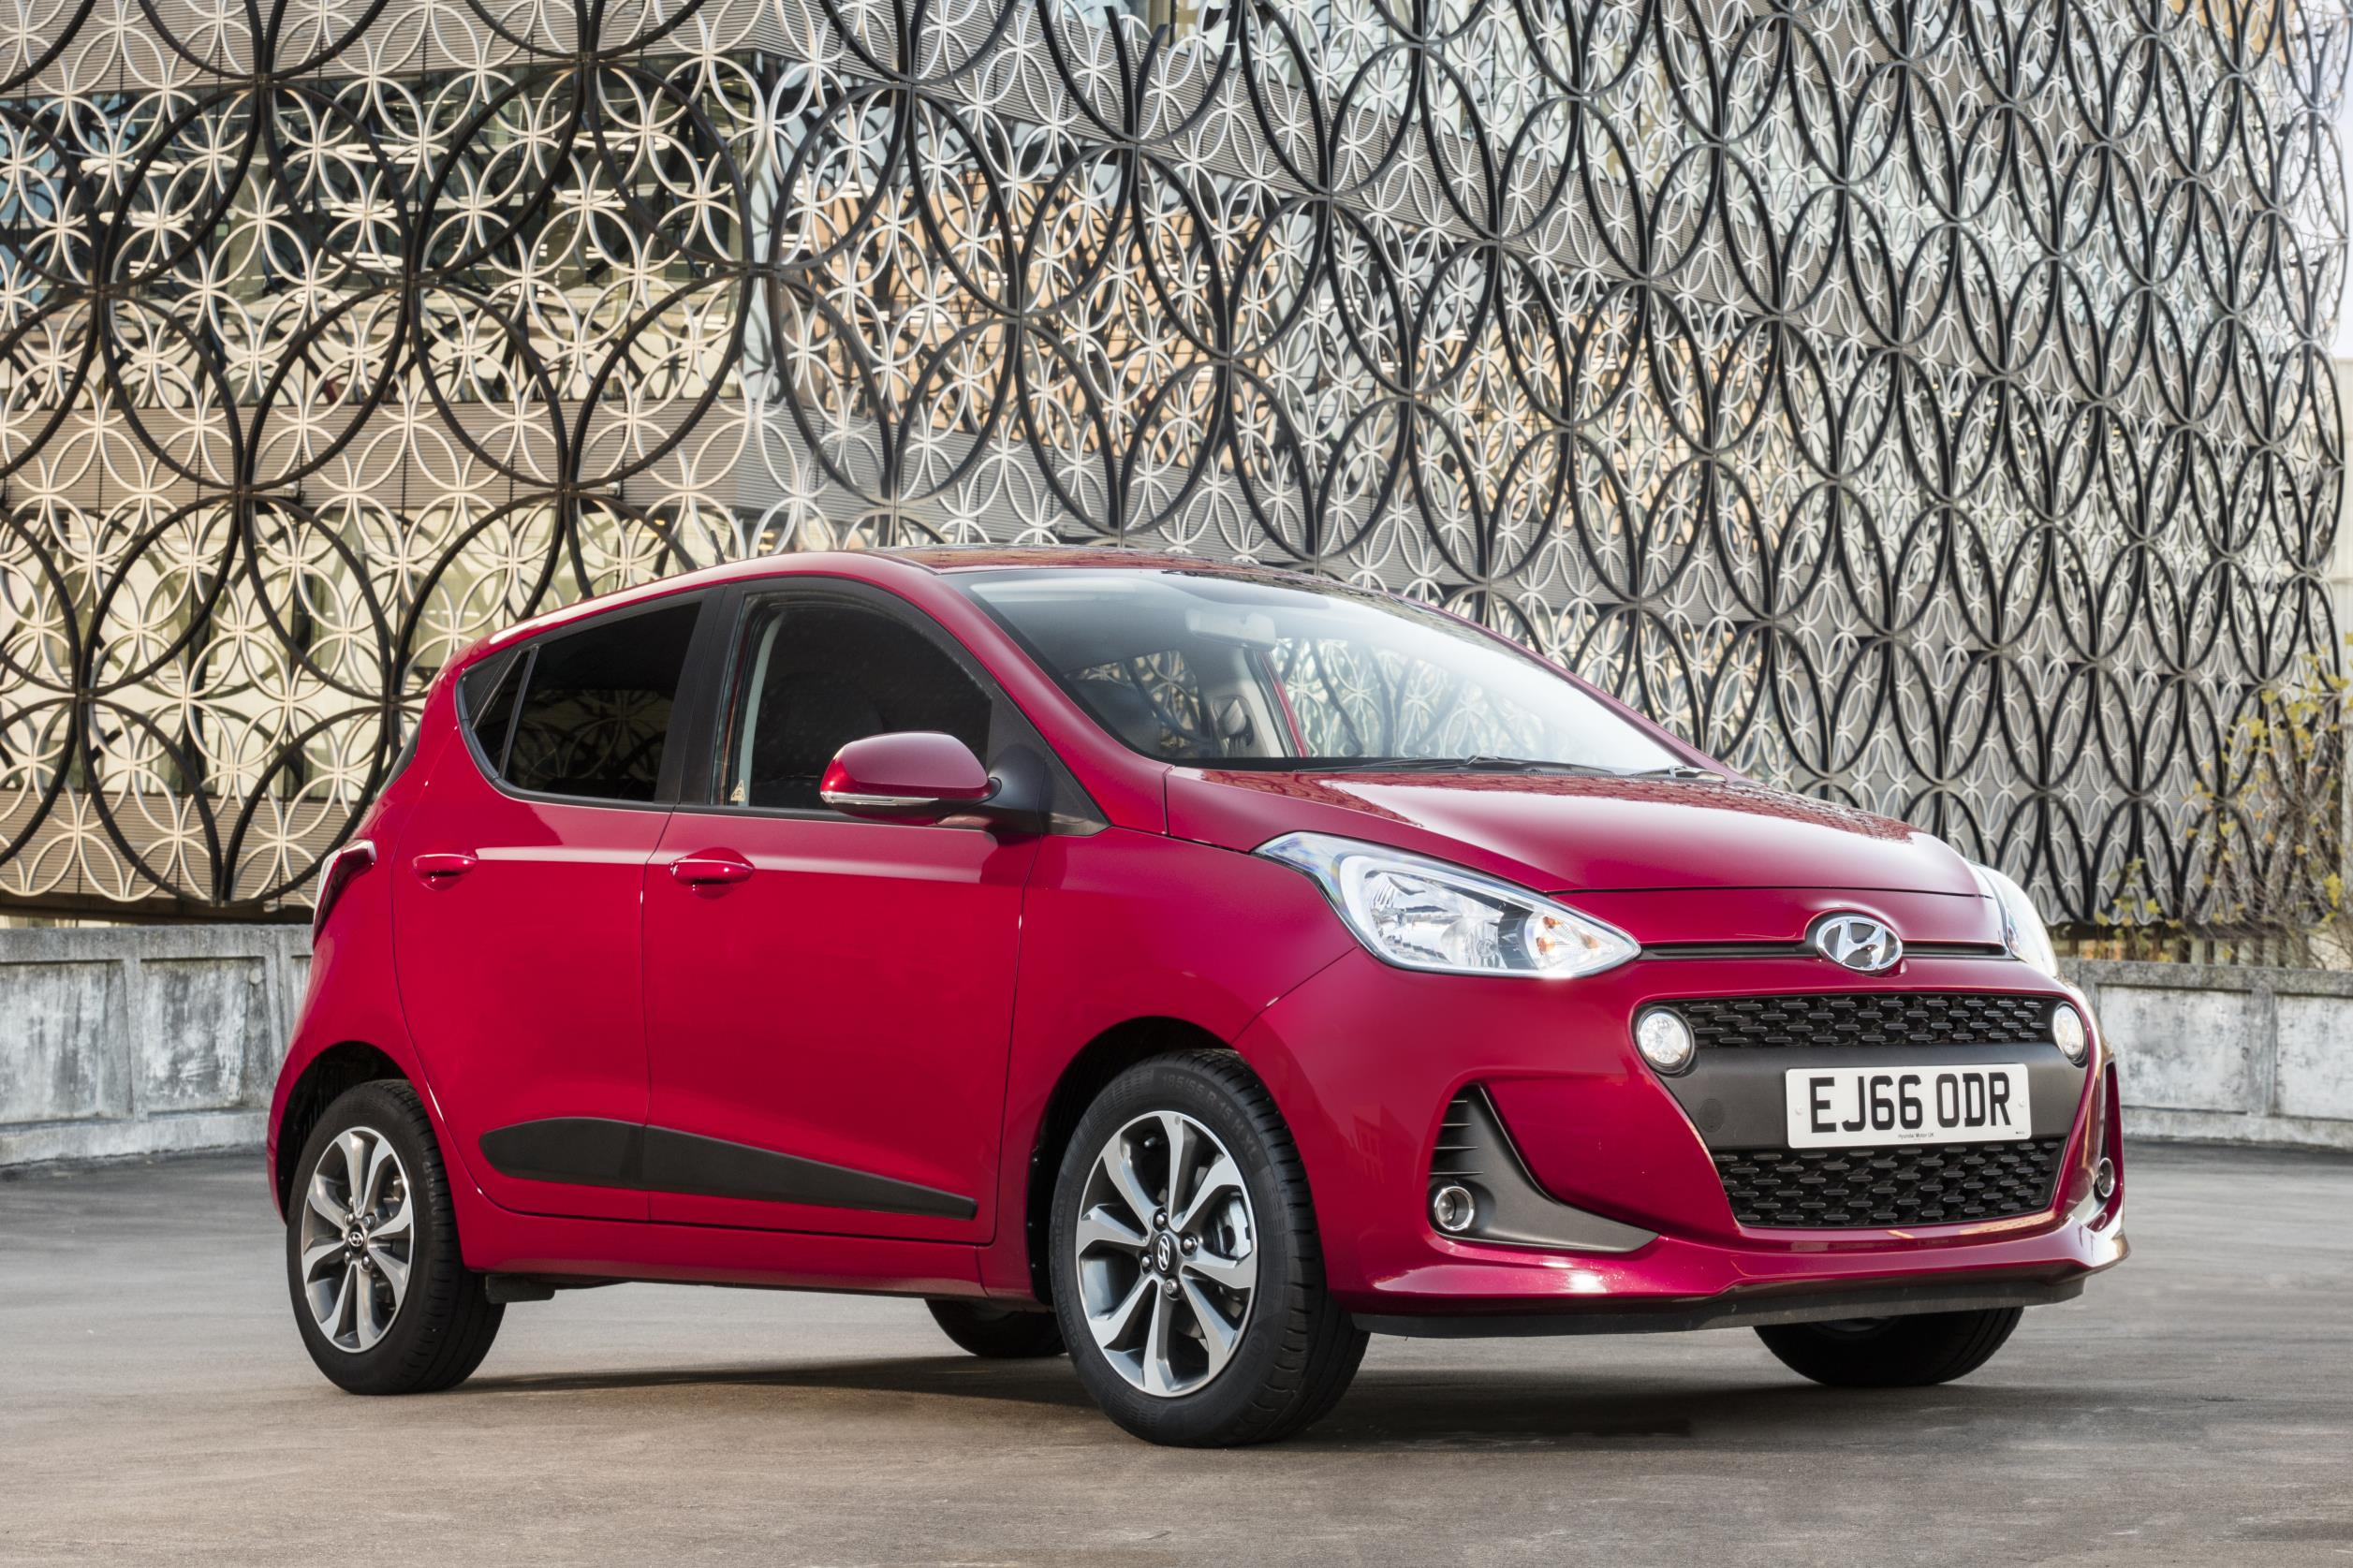 2017 Hyundai I10 Priced In The Uk Still Good Value For